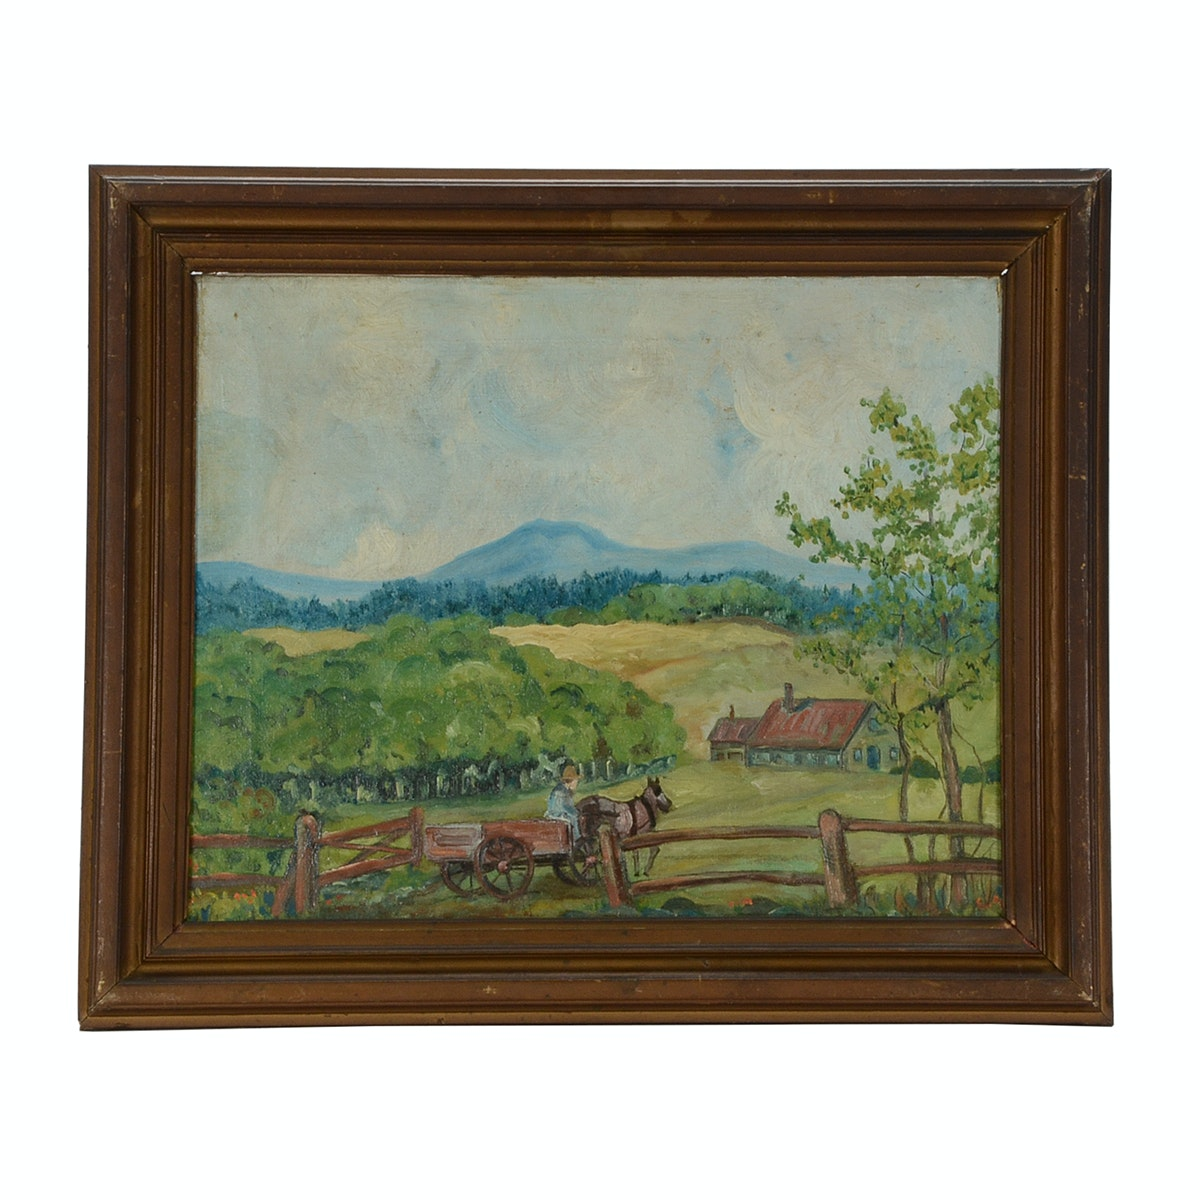 Original Early 20th-Century Post-Impressionist Oil Landscape on Canvas